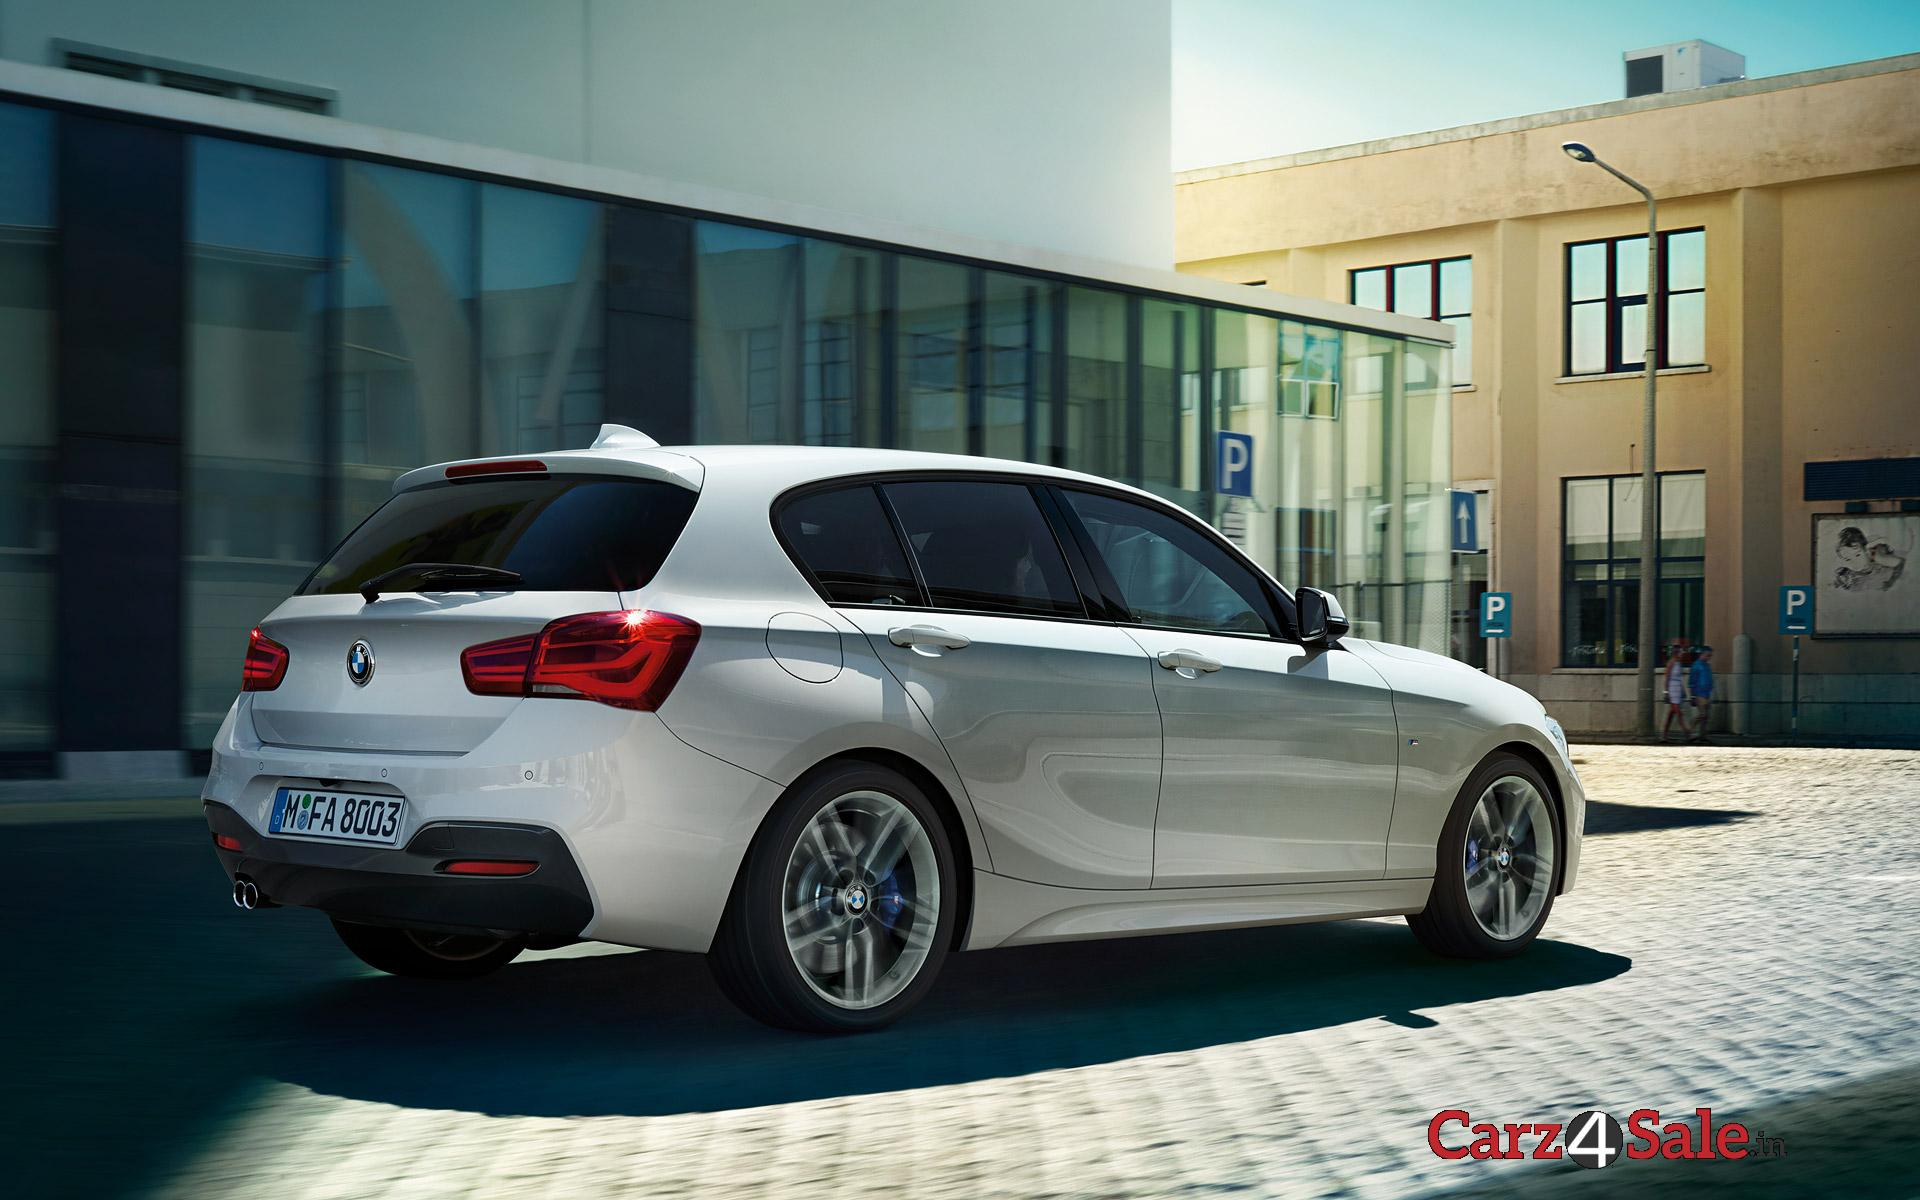 Bmw 1 Series Rear Right Side View